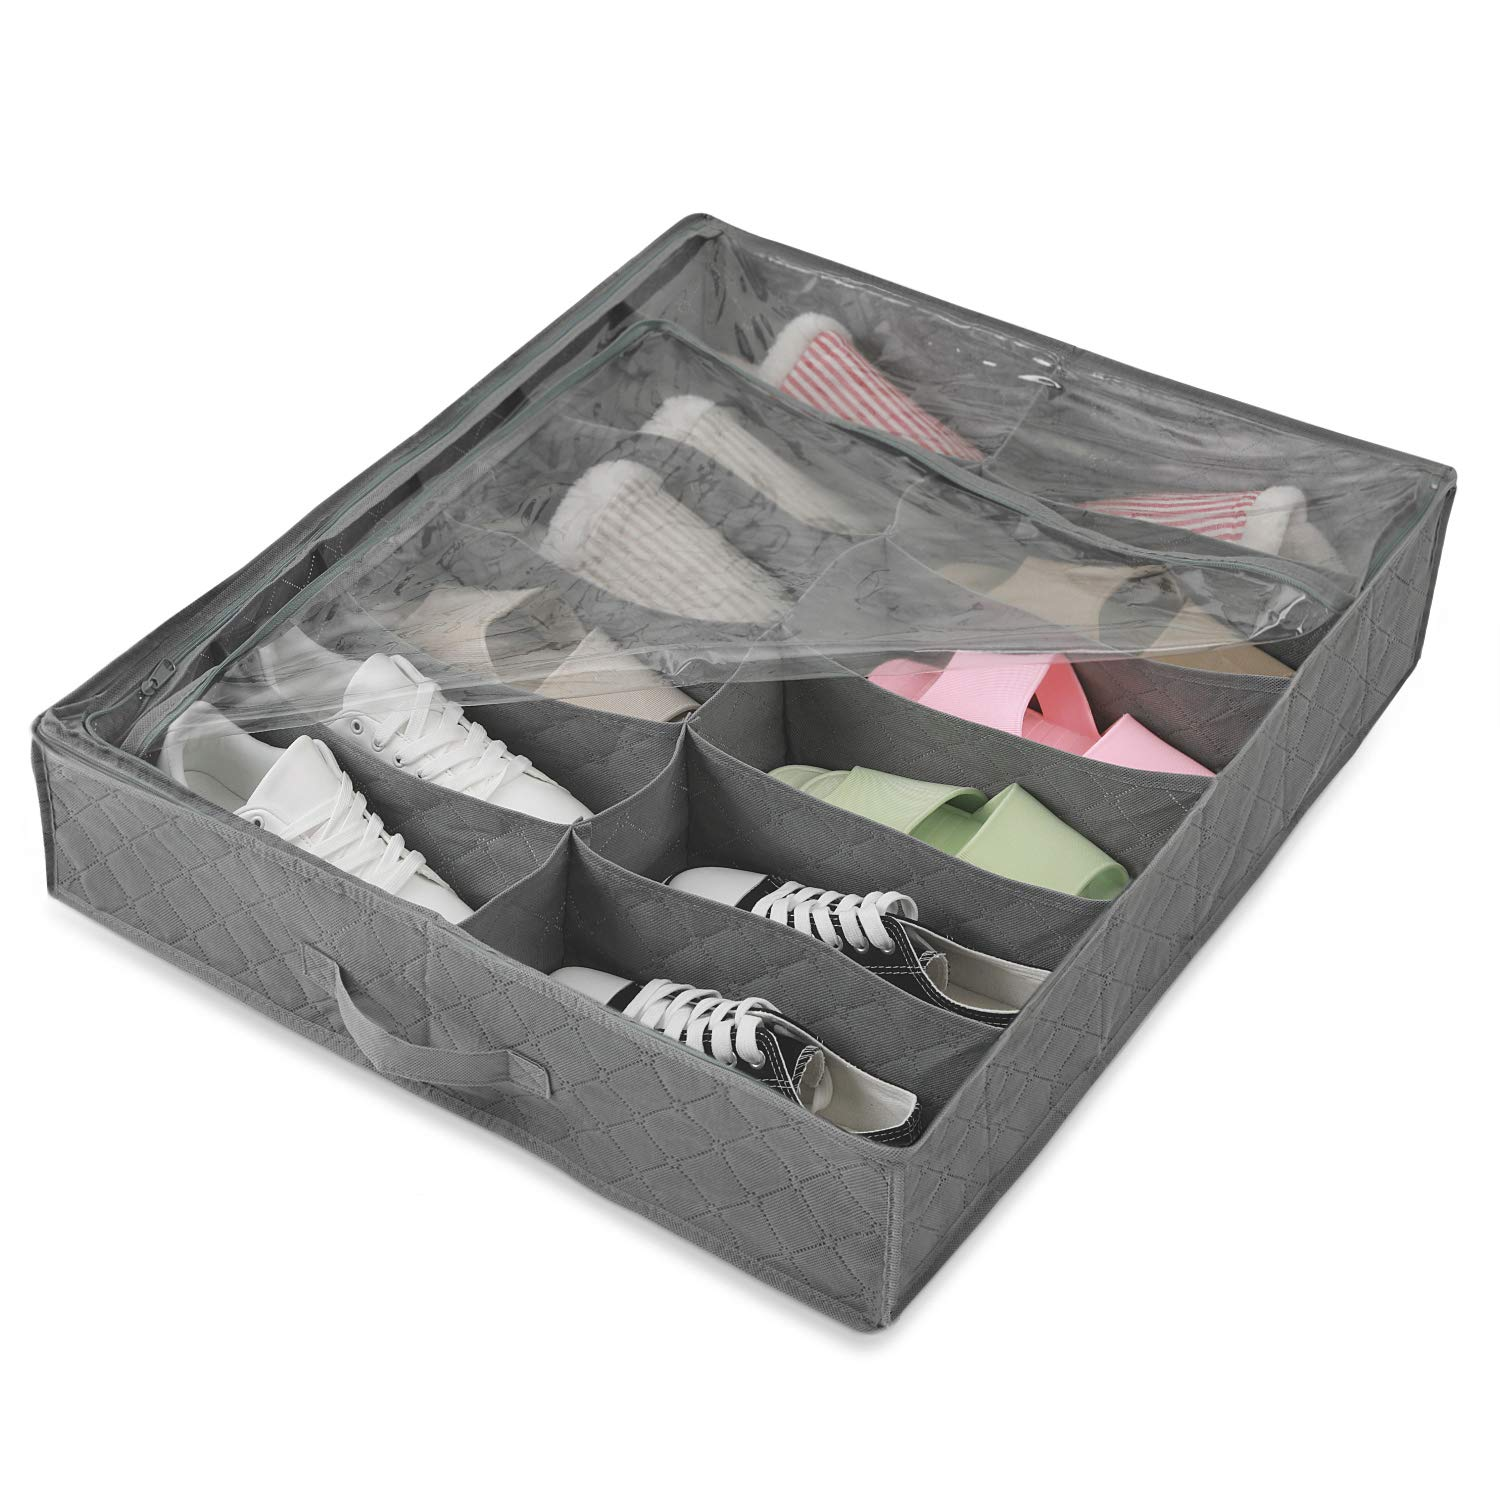 Magicfly Under Bed Shoes Organizer Storage Bag Underbed Shoes Closet Storage Solution with Clear Plastic Zippered Cover 12 Cell for Kids/Women